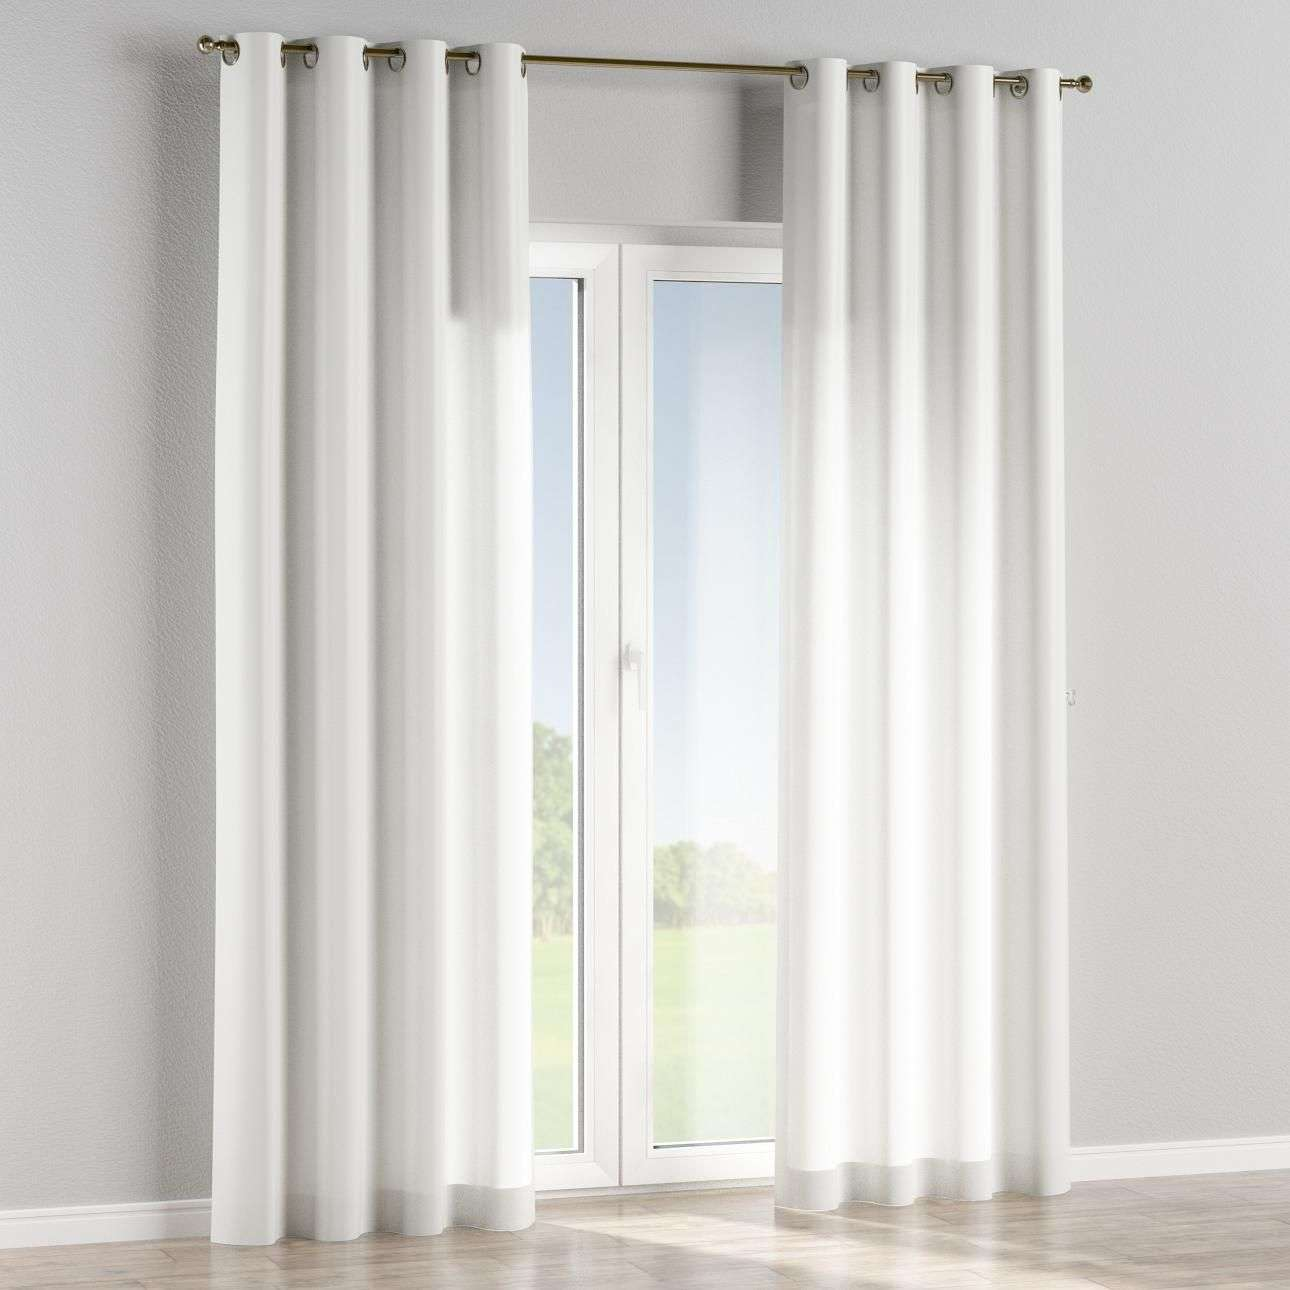 Eyelet curtains in collection Arcana, fabric: 102-02